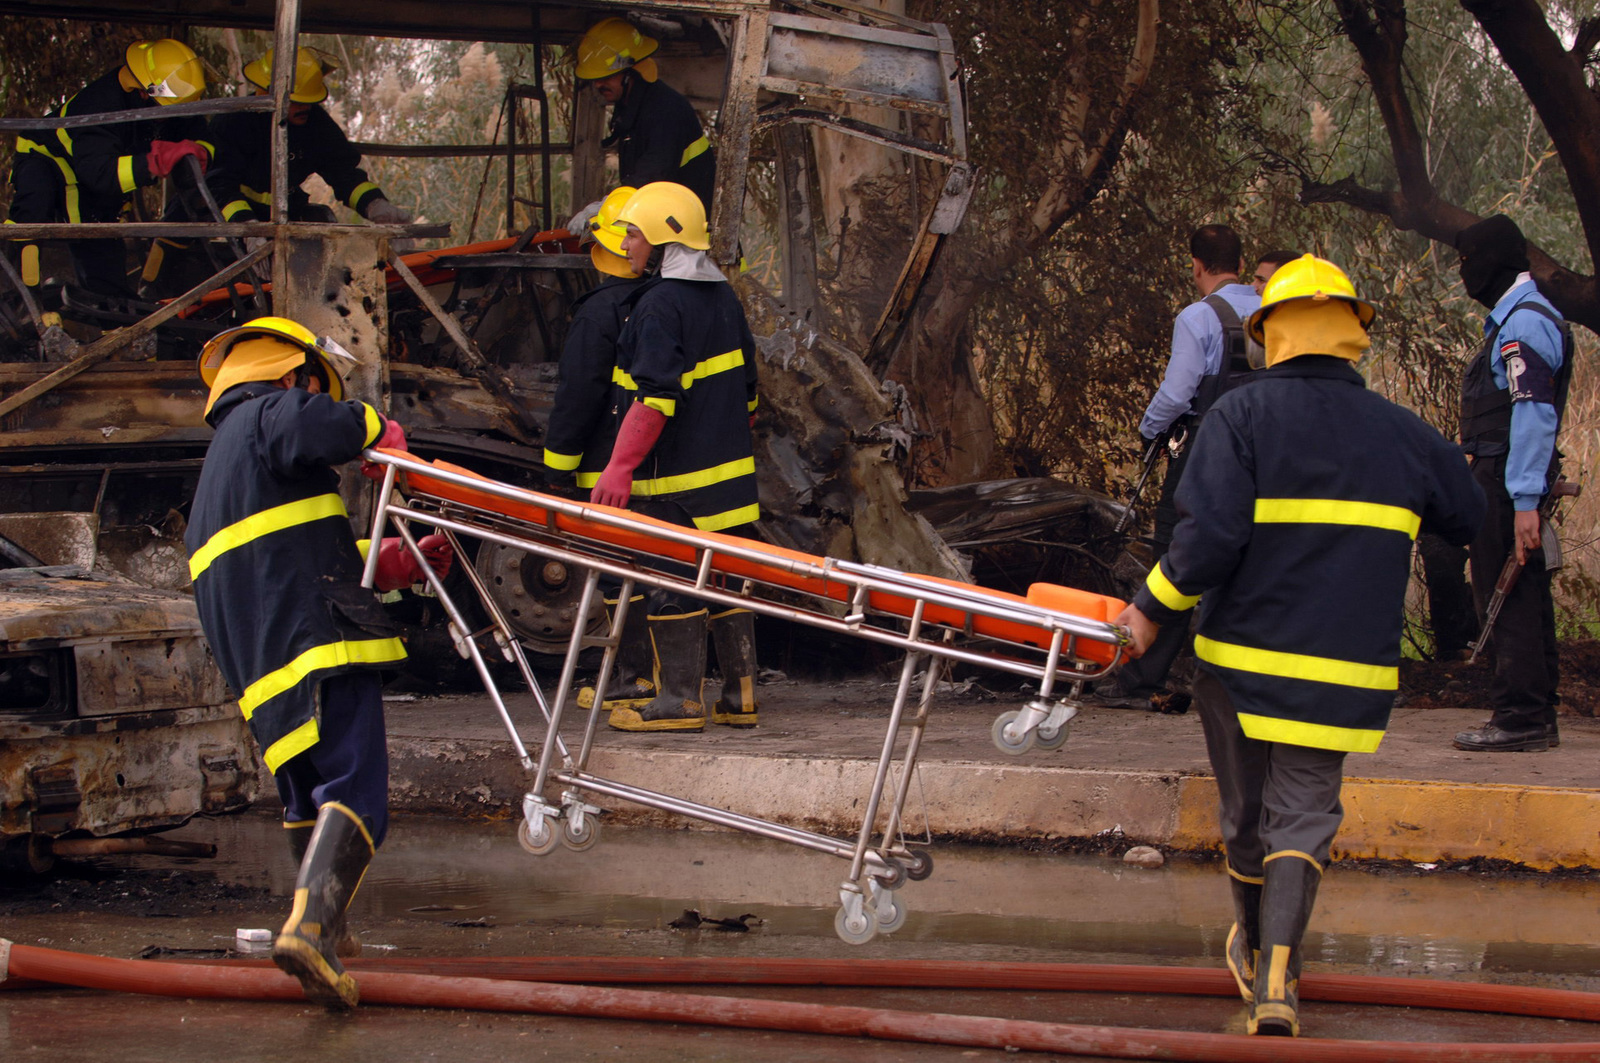 Ba'Qubah City Fire fighters bring stretchers onto the scene of en exploded bus that was to escort 18 Iraqi policemen to the Police Academy in Solaymanya, Iraq on Jan. 2, 2006. (U.S. Army photo by SPECIALIST Danielle Howard) (Released)